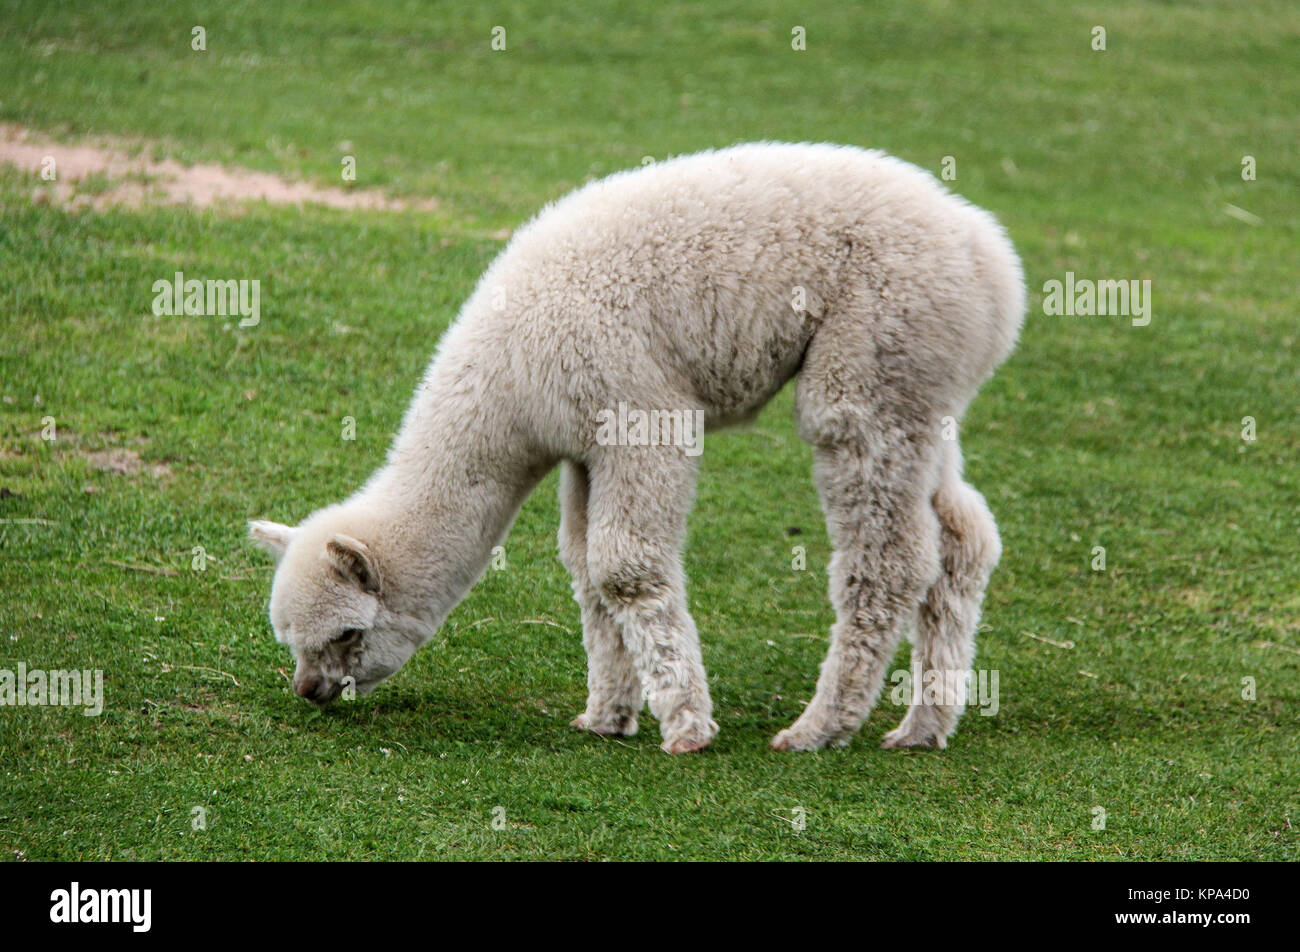 alpaca and llama with funny hairstyle - Stock Image